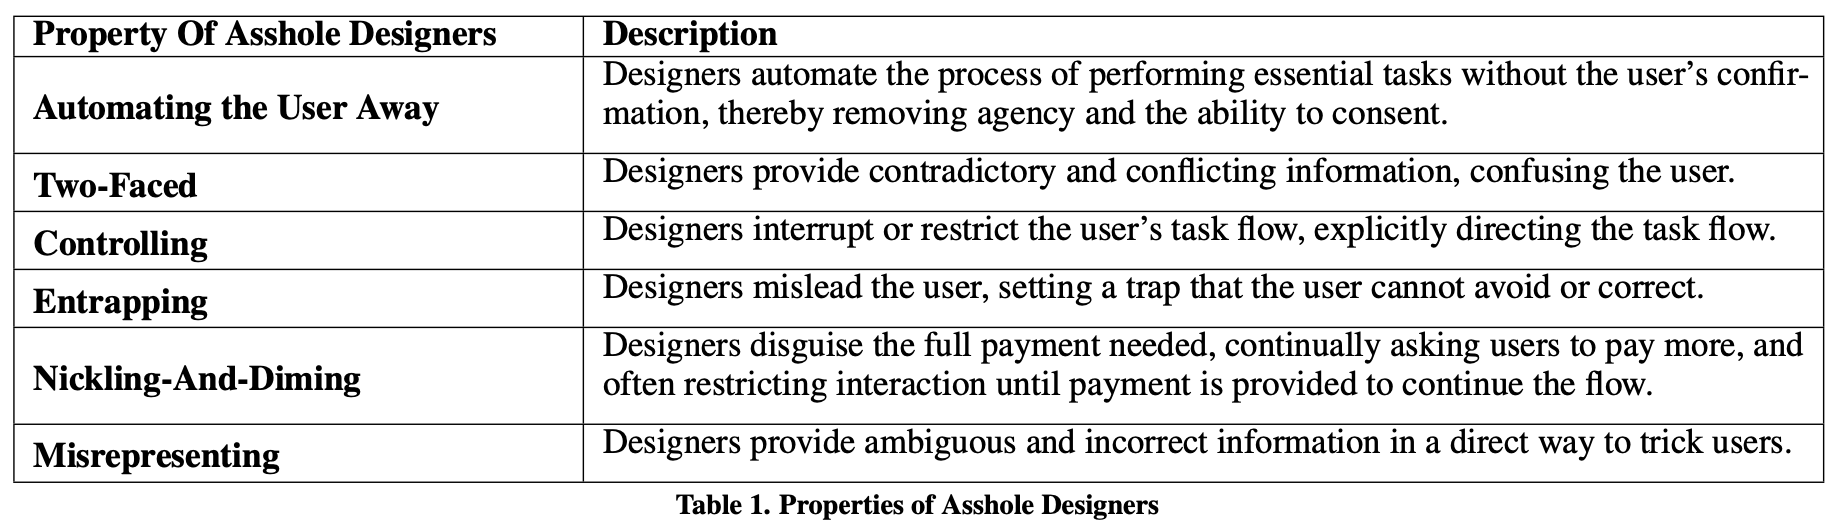 Table showing 6 properties of Asshole Designers